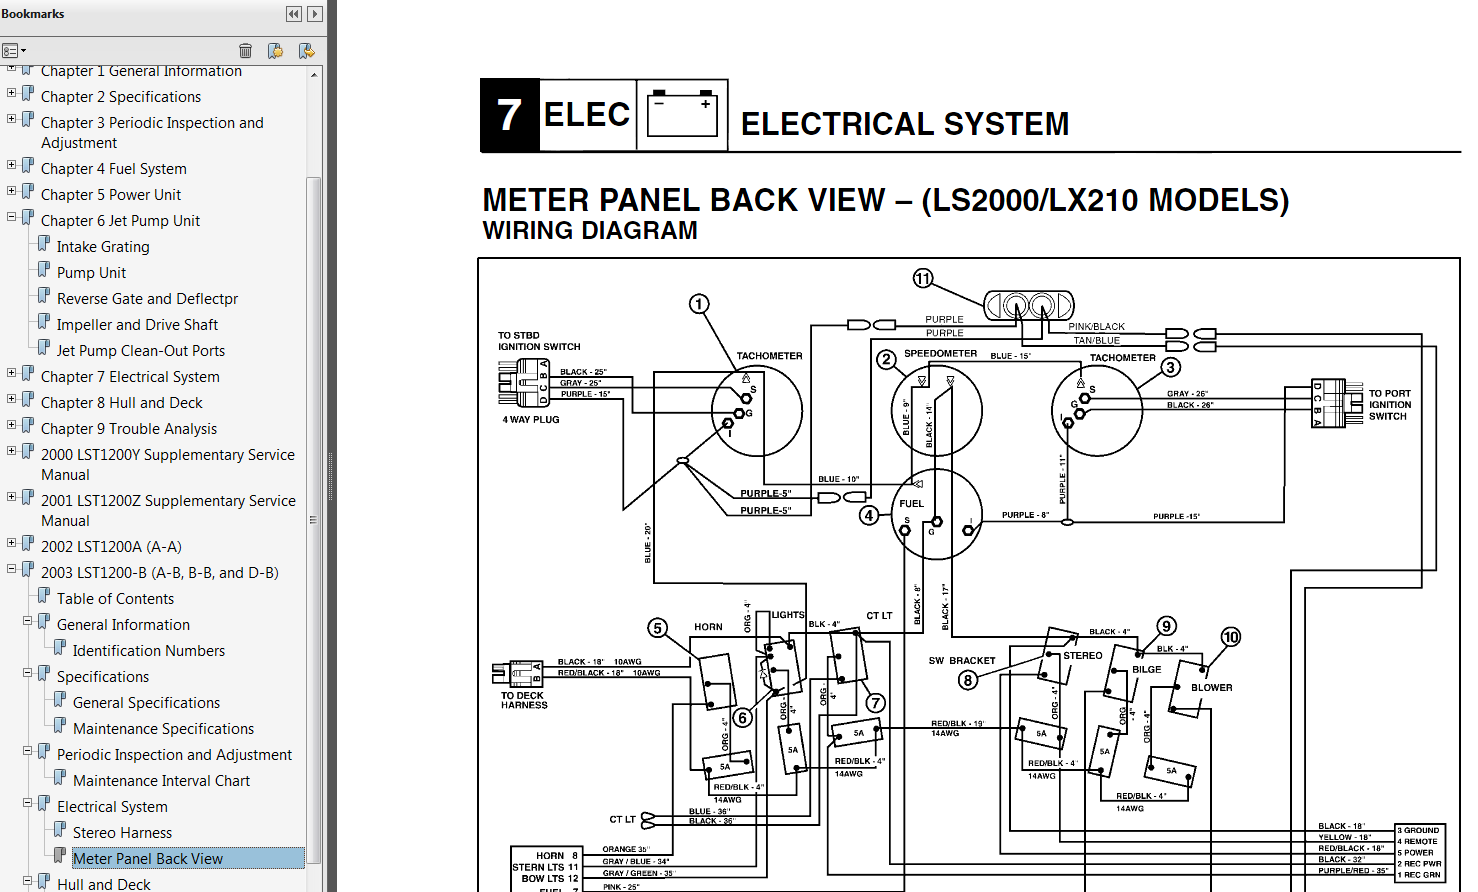 yamaha 50 wiring diagram free download schematic vintage boat wiring diagram free download schematic 1996-1998 yamaha exciter 220 jet boat service manual ...